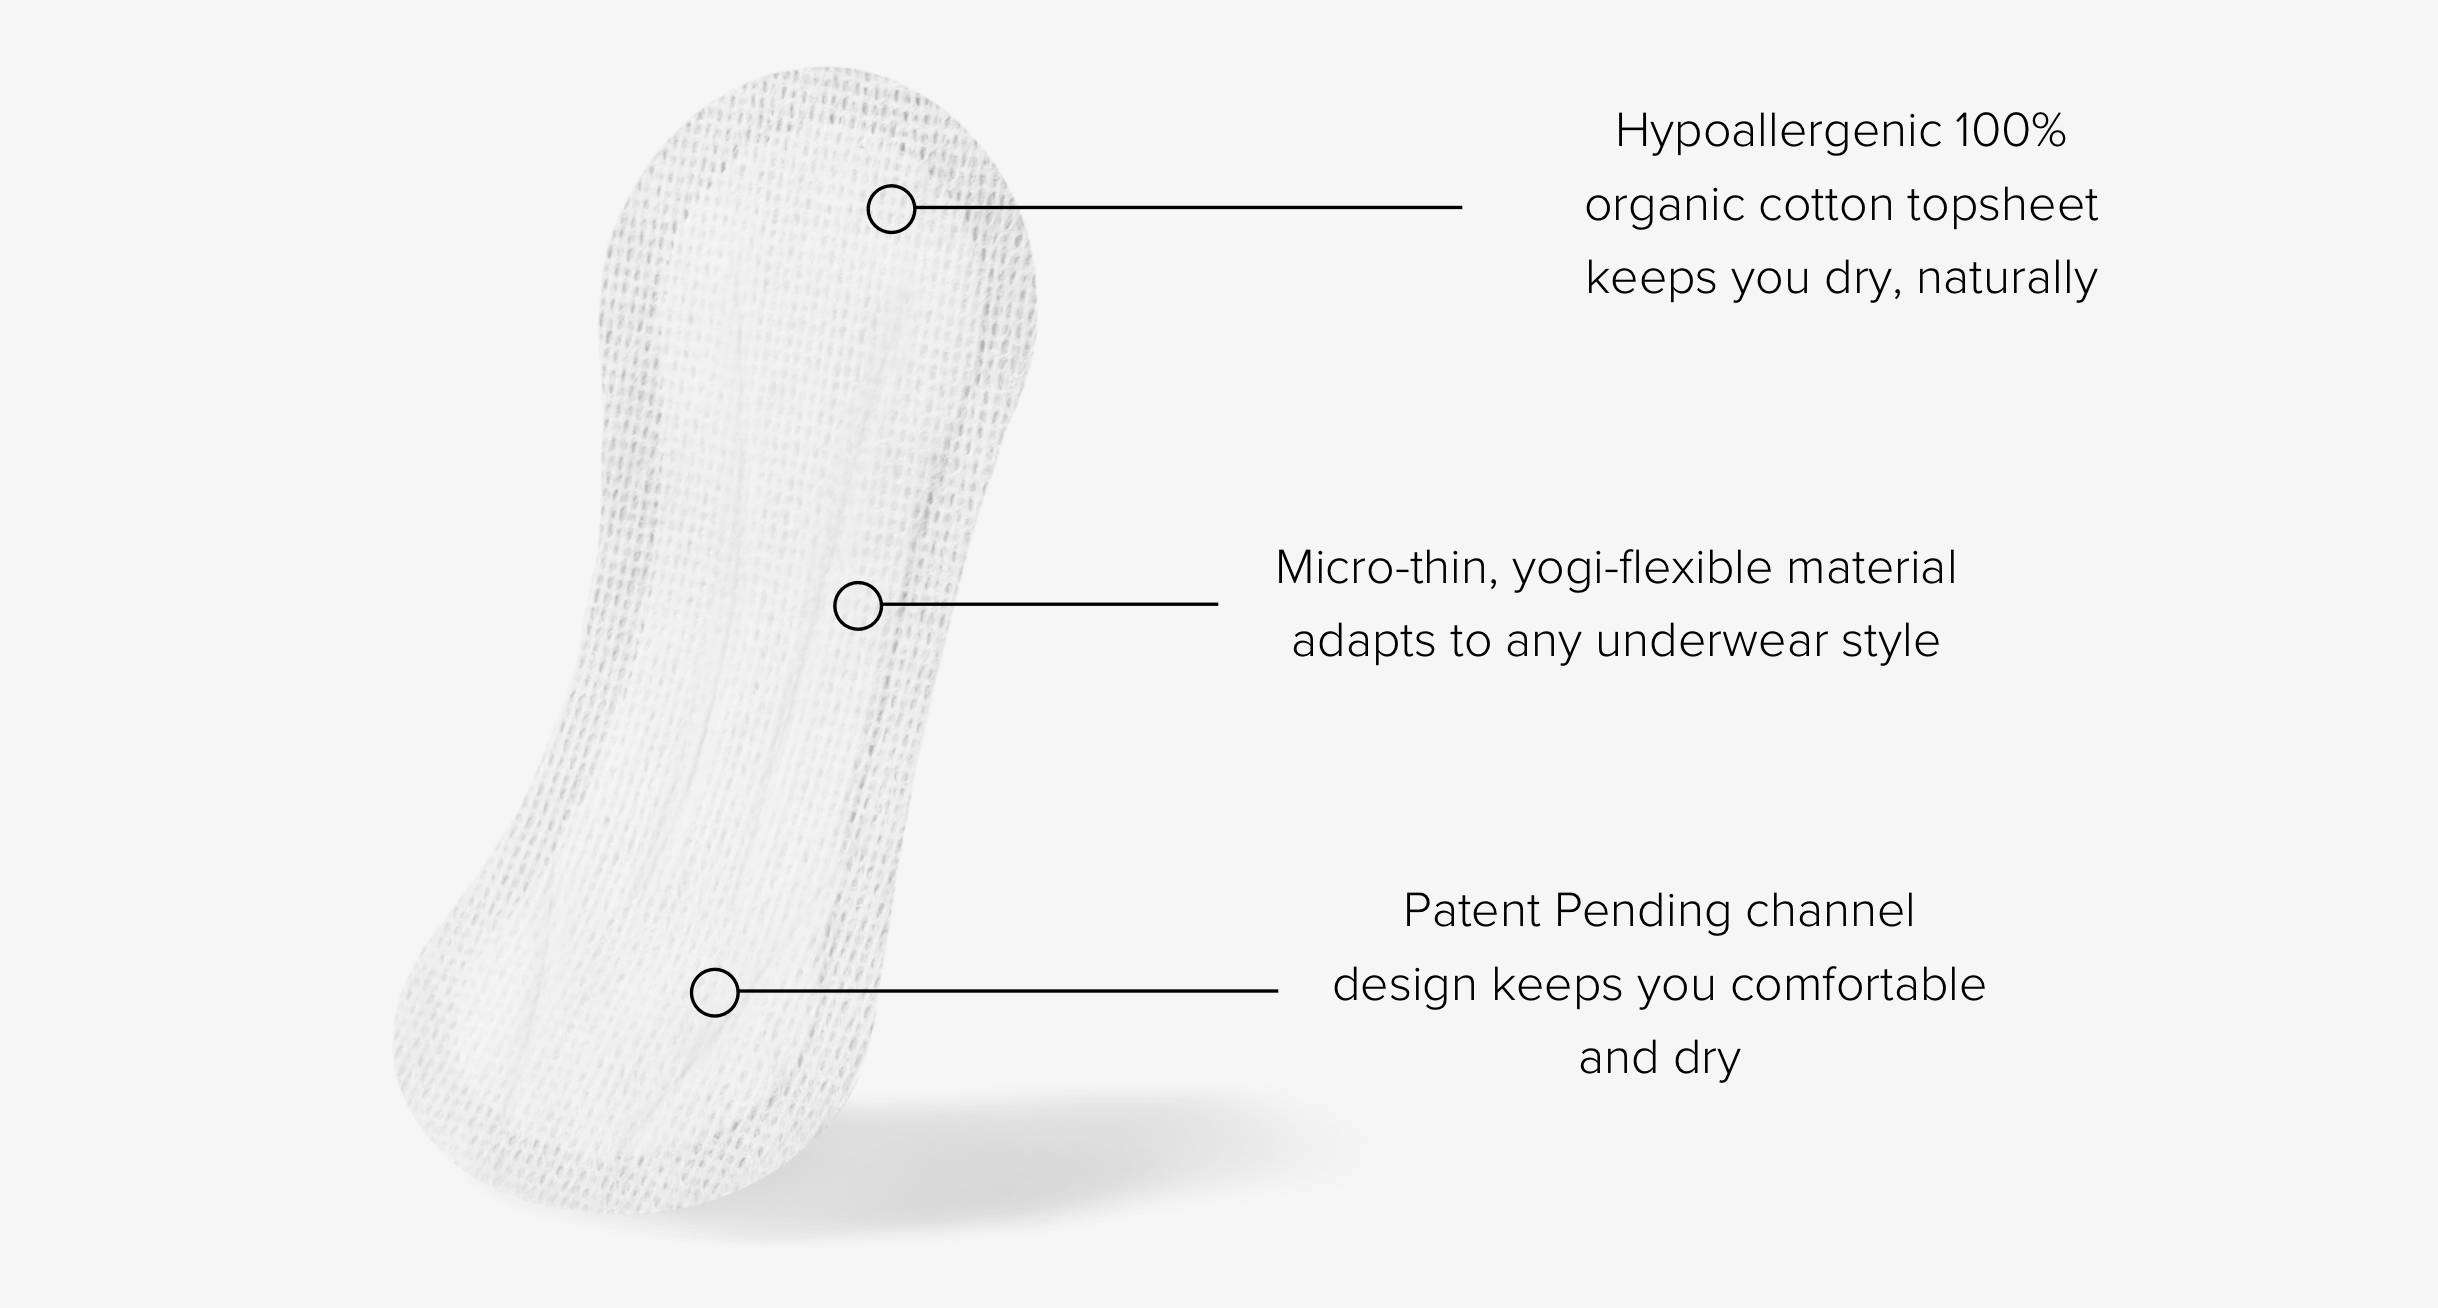 An organic Cora panty liner that is accompanied by a list of its benefits, including its flexible material.